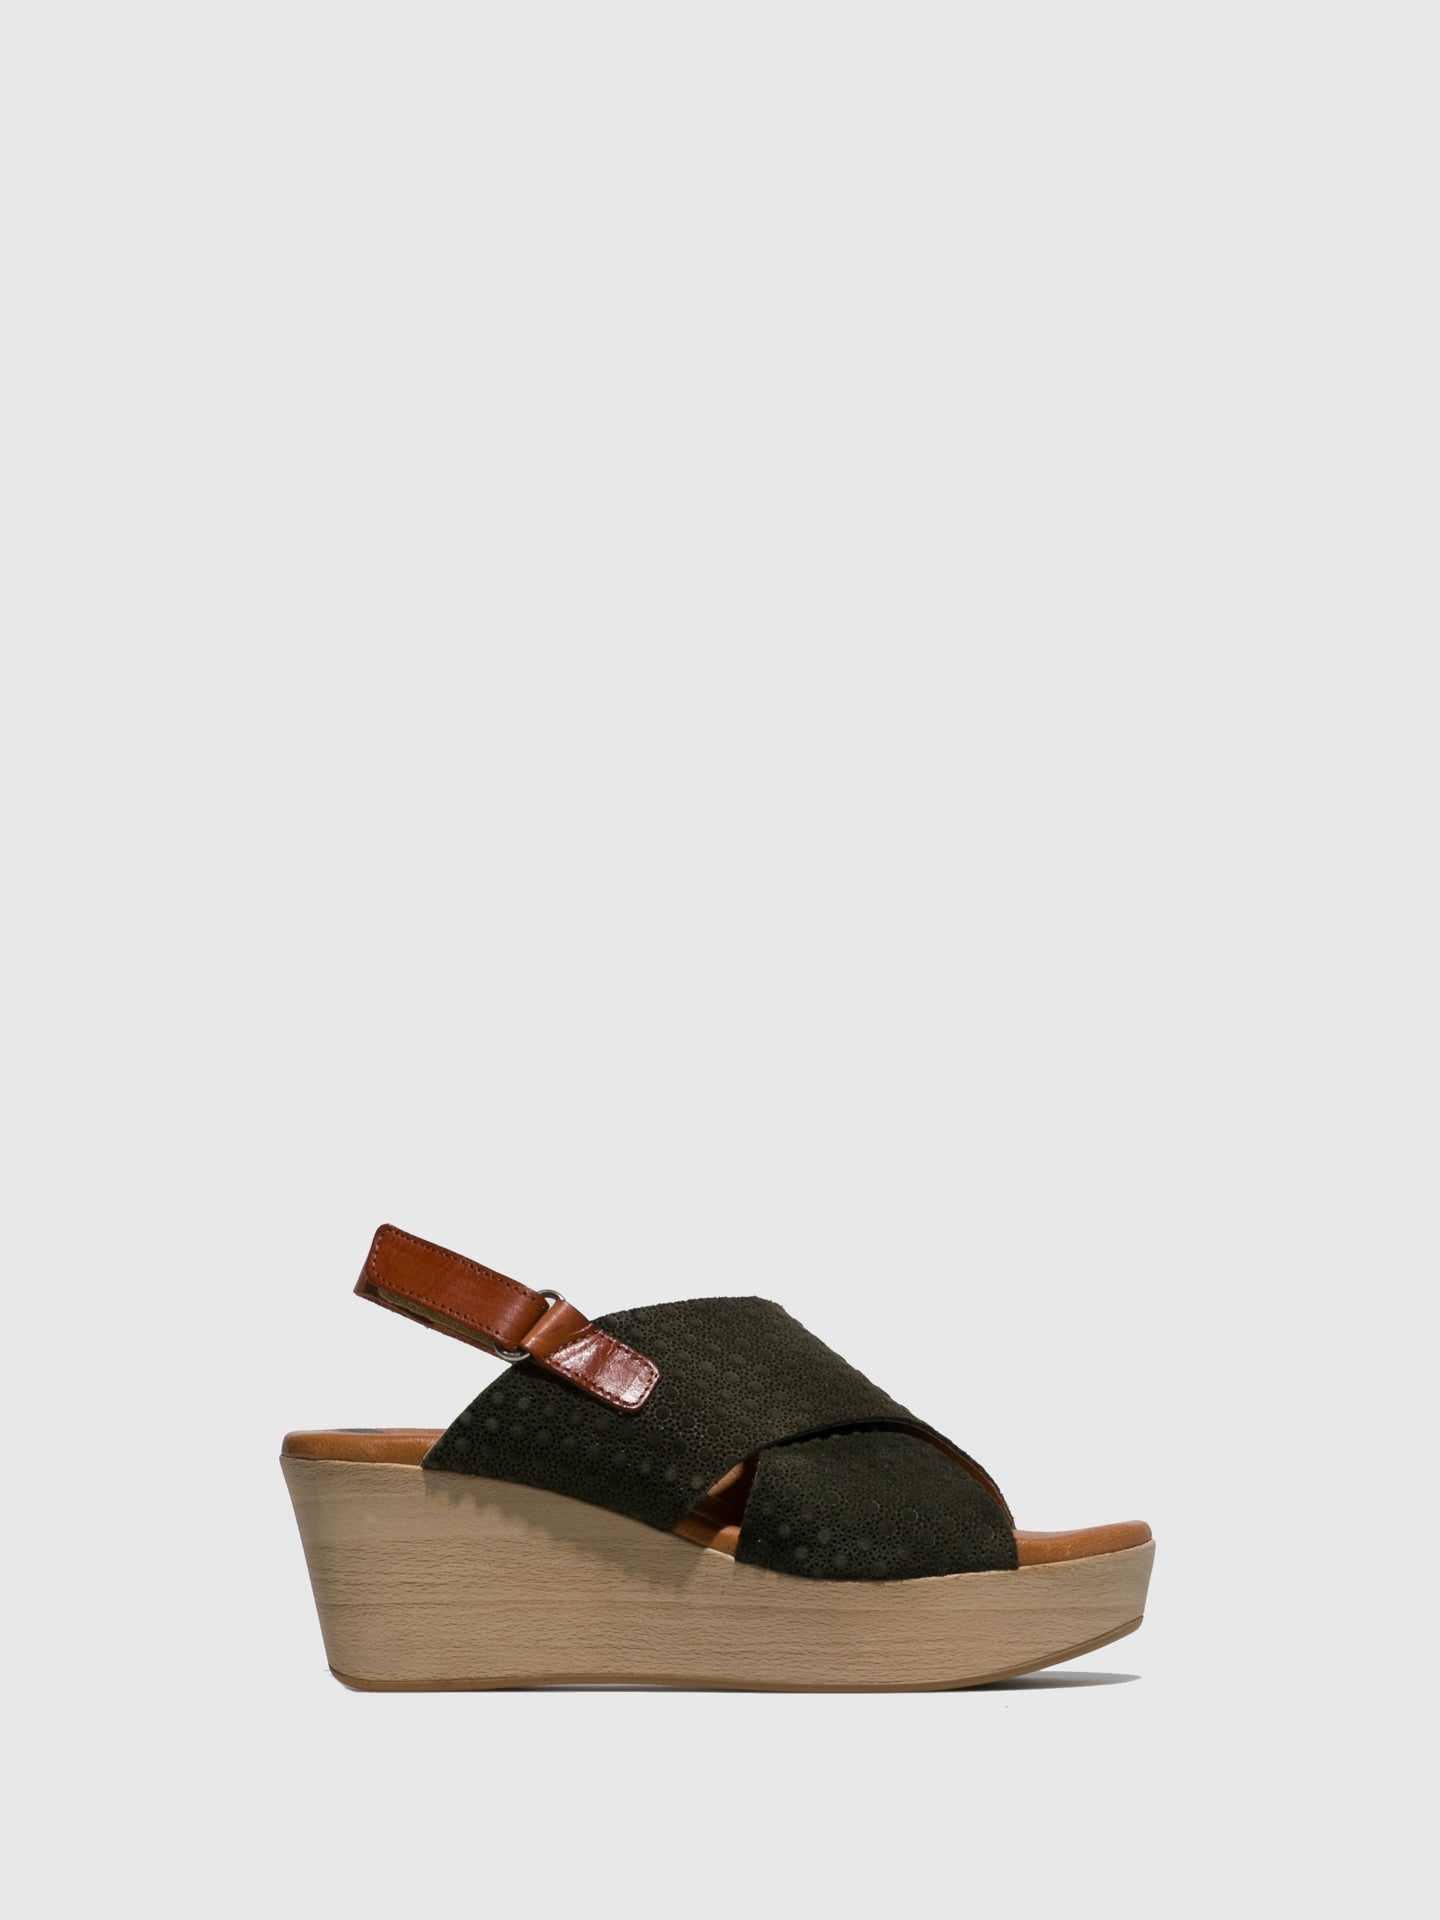 Sotoalto Olive Wedge Sandals